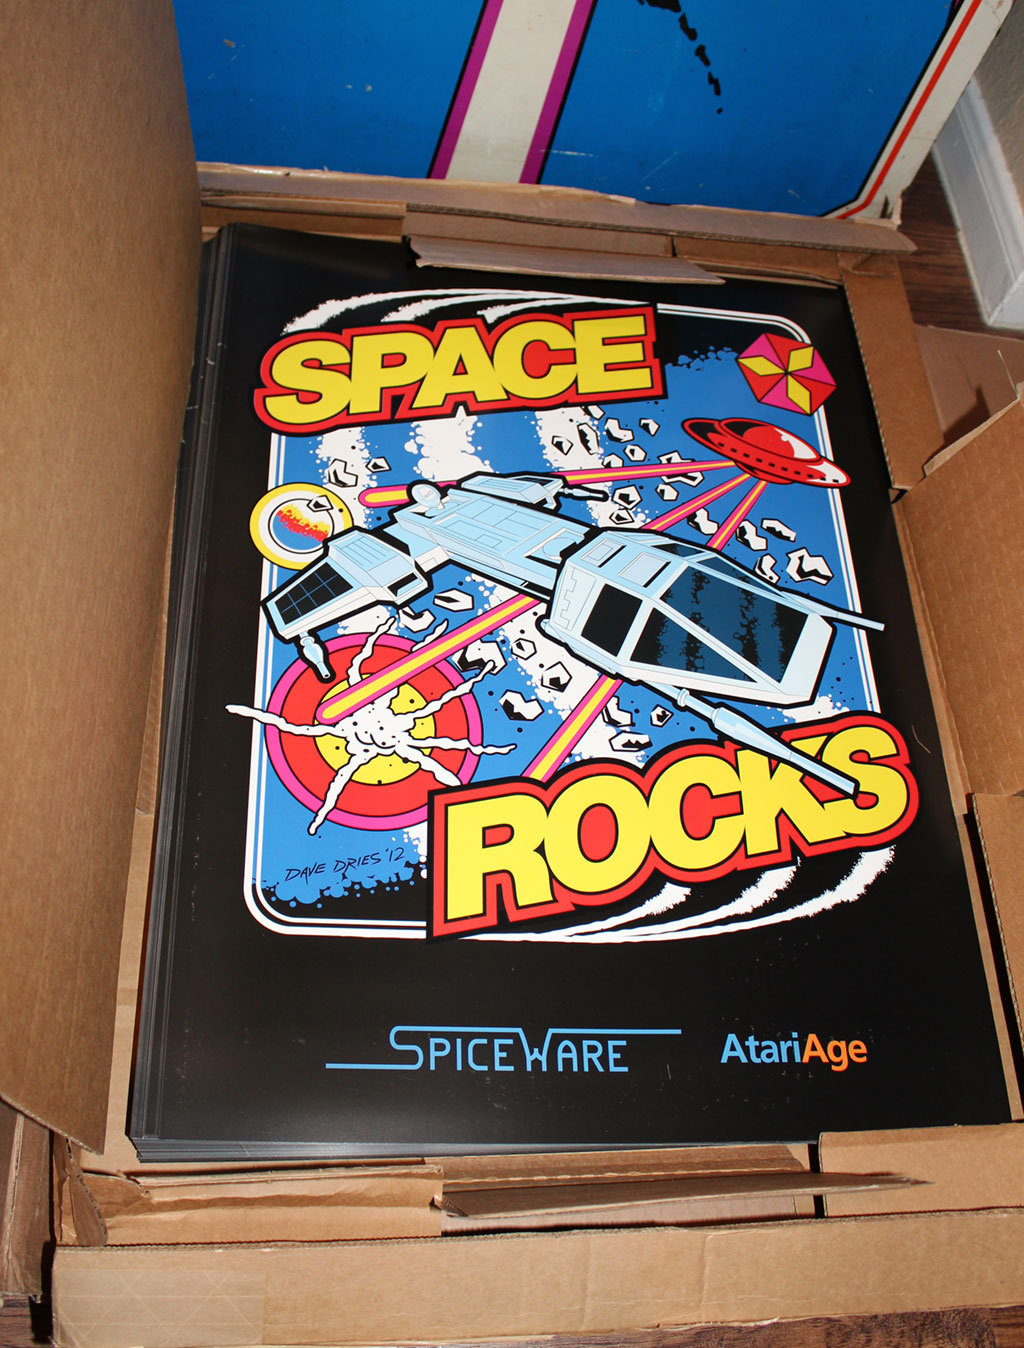 space_rocks_poster_unboxed.jpg